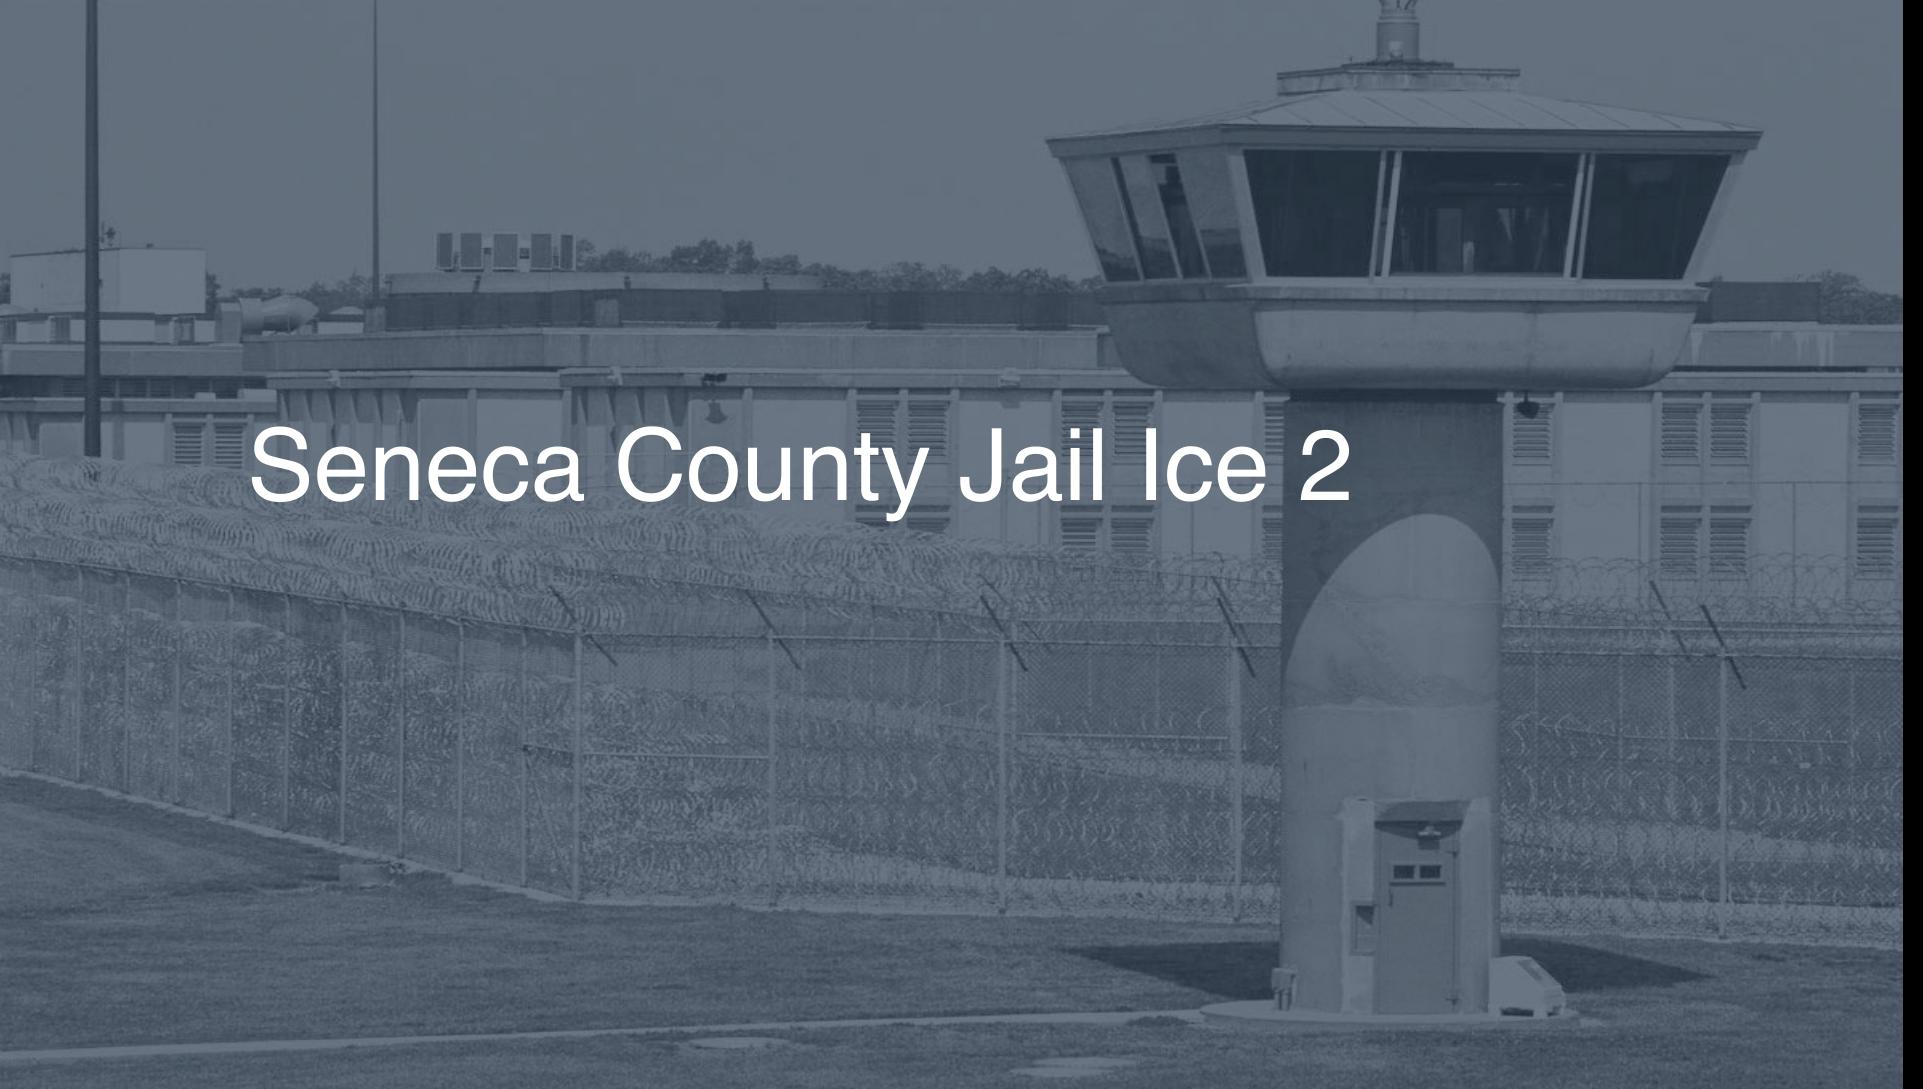 Seneca County Jail (ICE) Inmate Search, Lookup & Services - Pigeonly